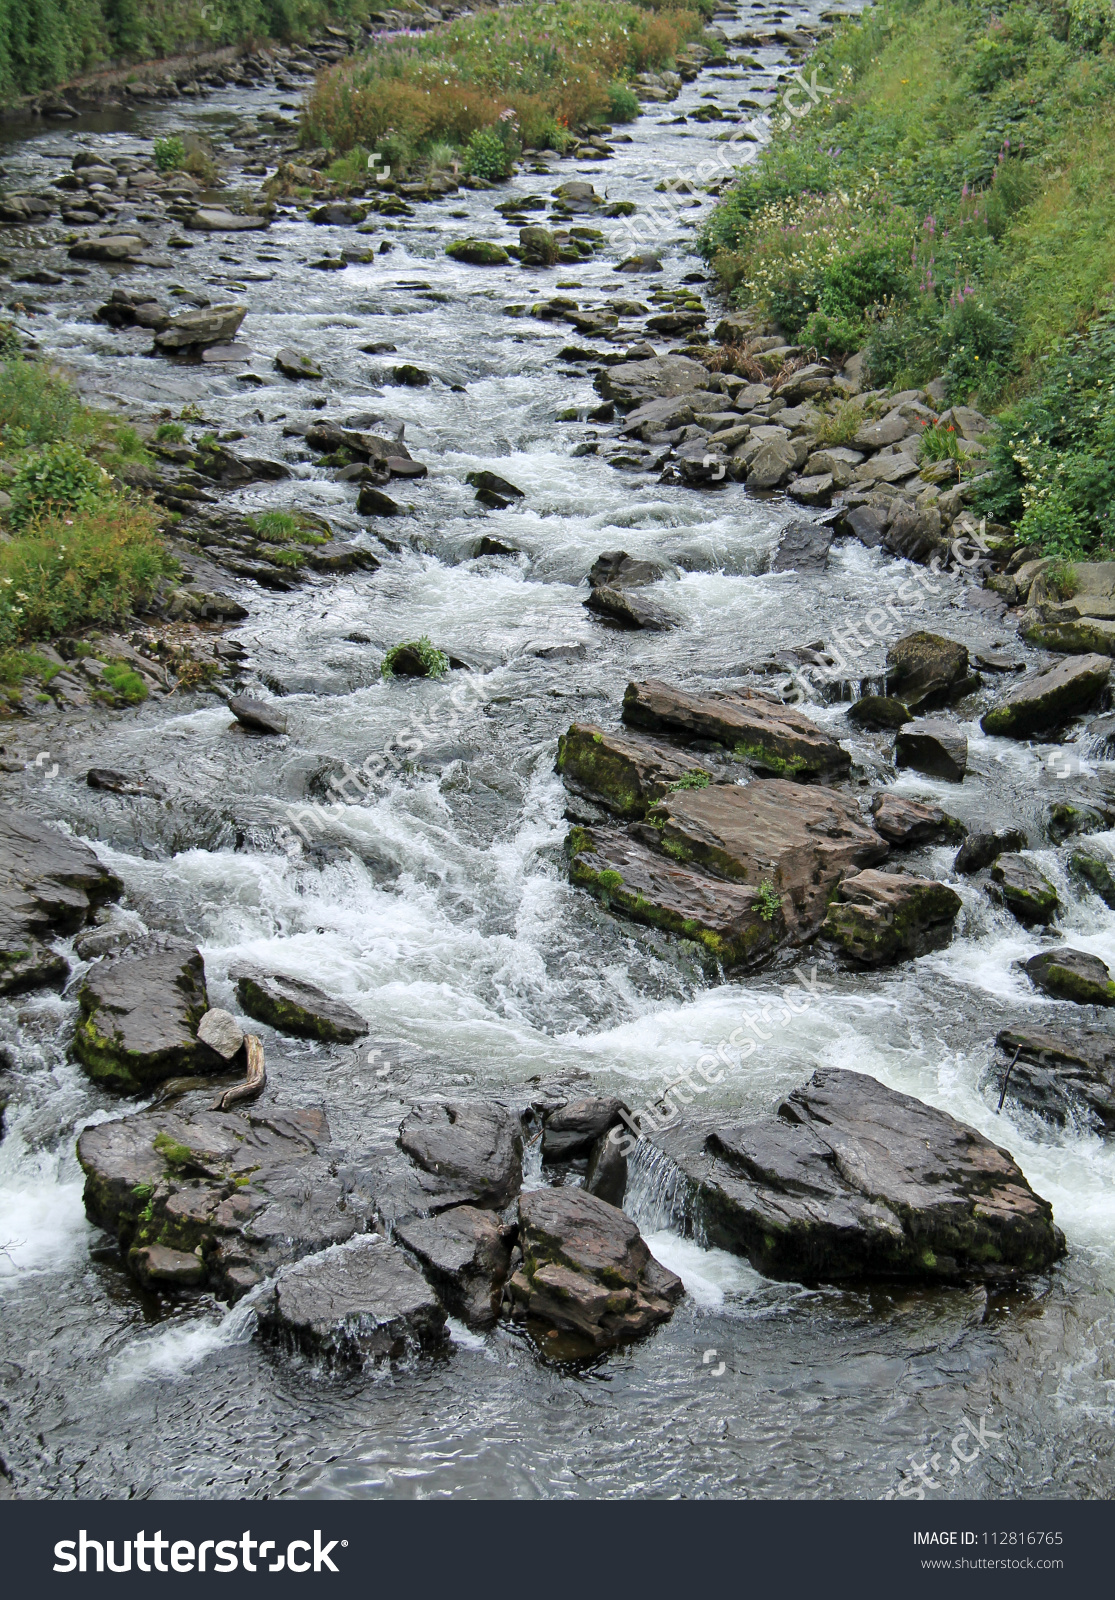 Large Stream Running Over Rocky Riverbed Stock Photo 112816765.